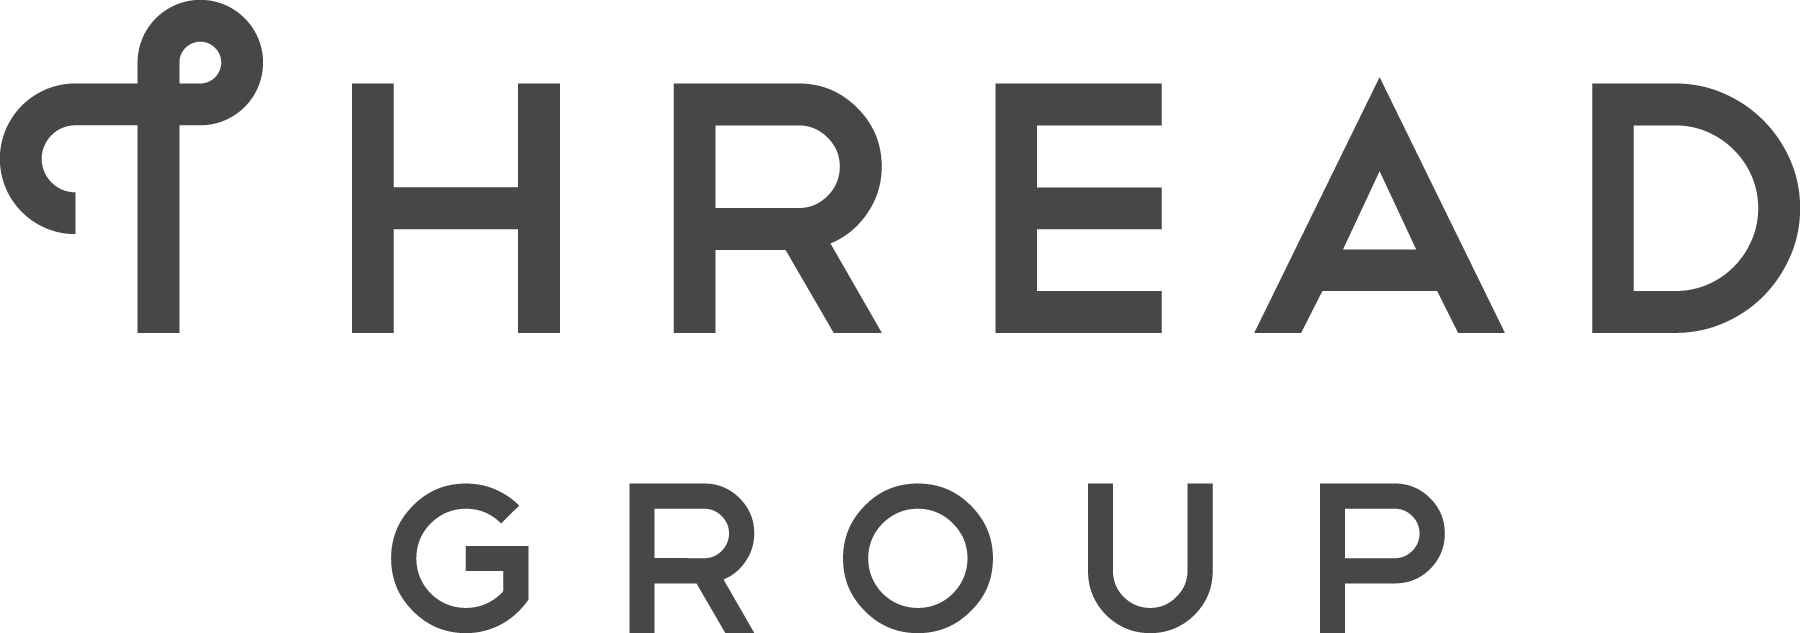 Thread_group_logo